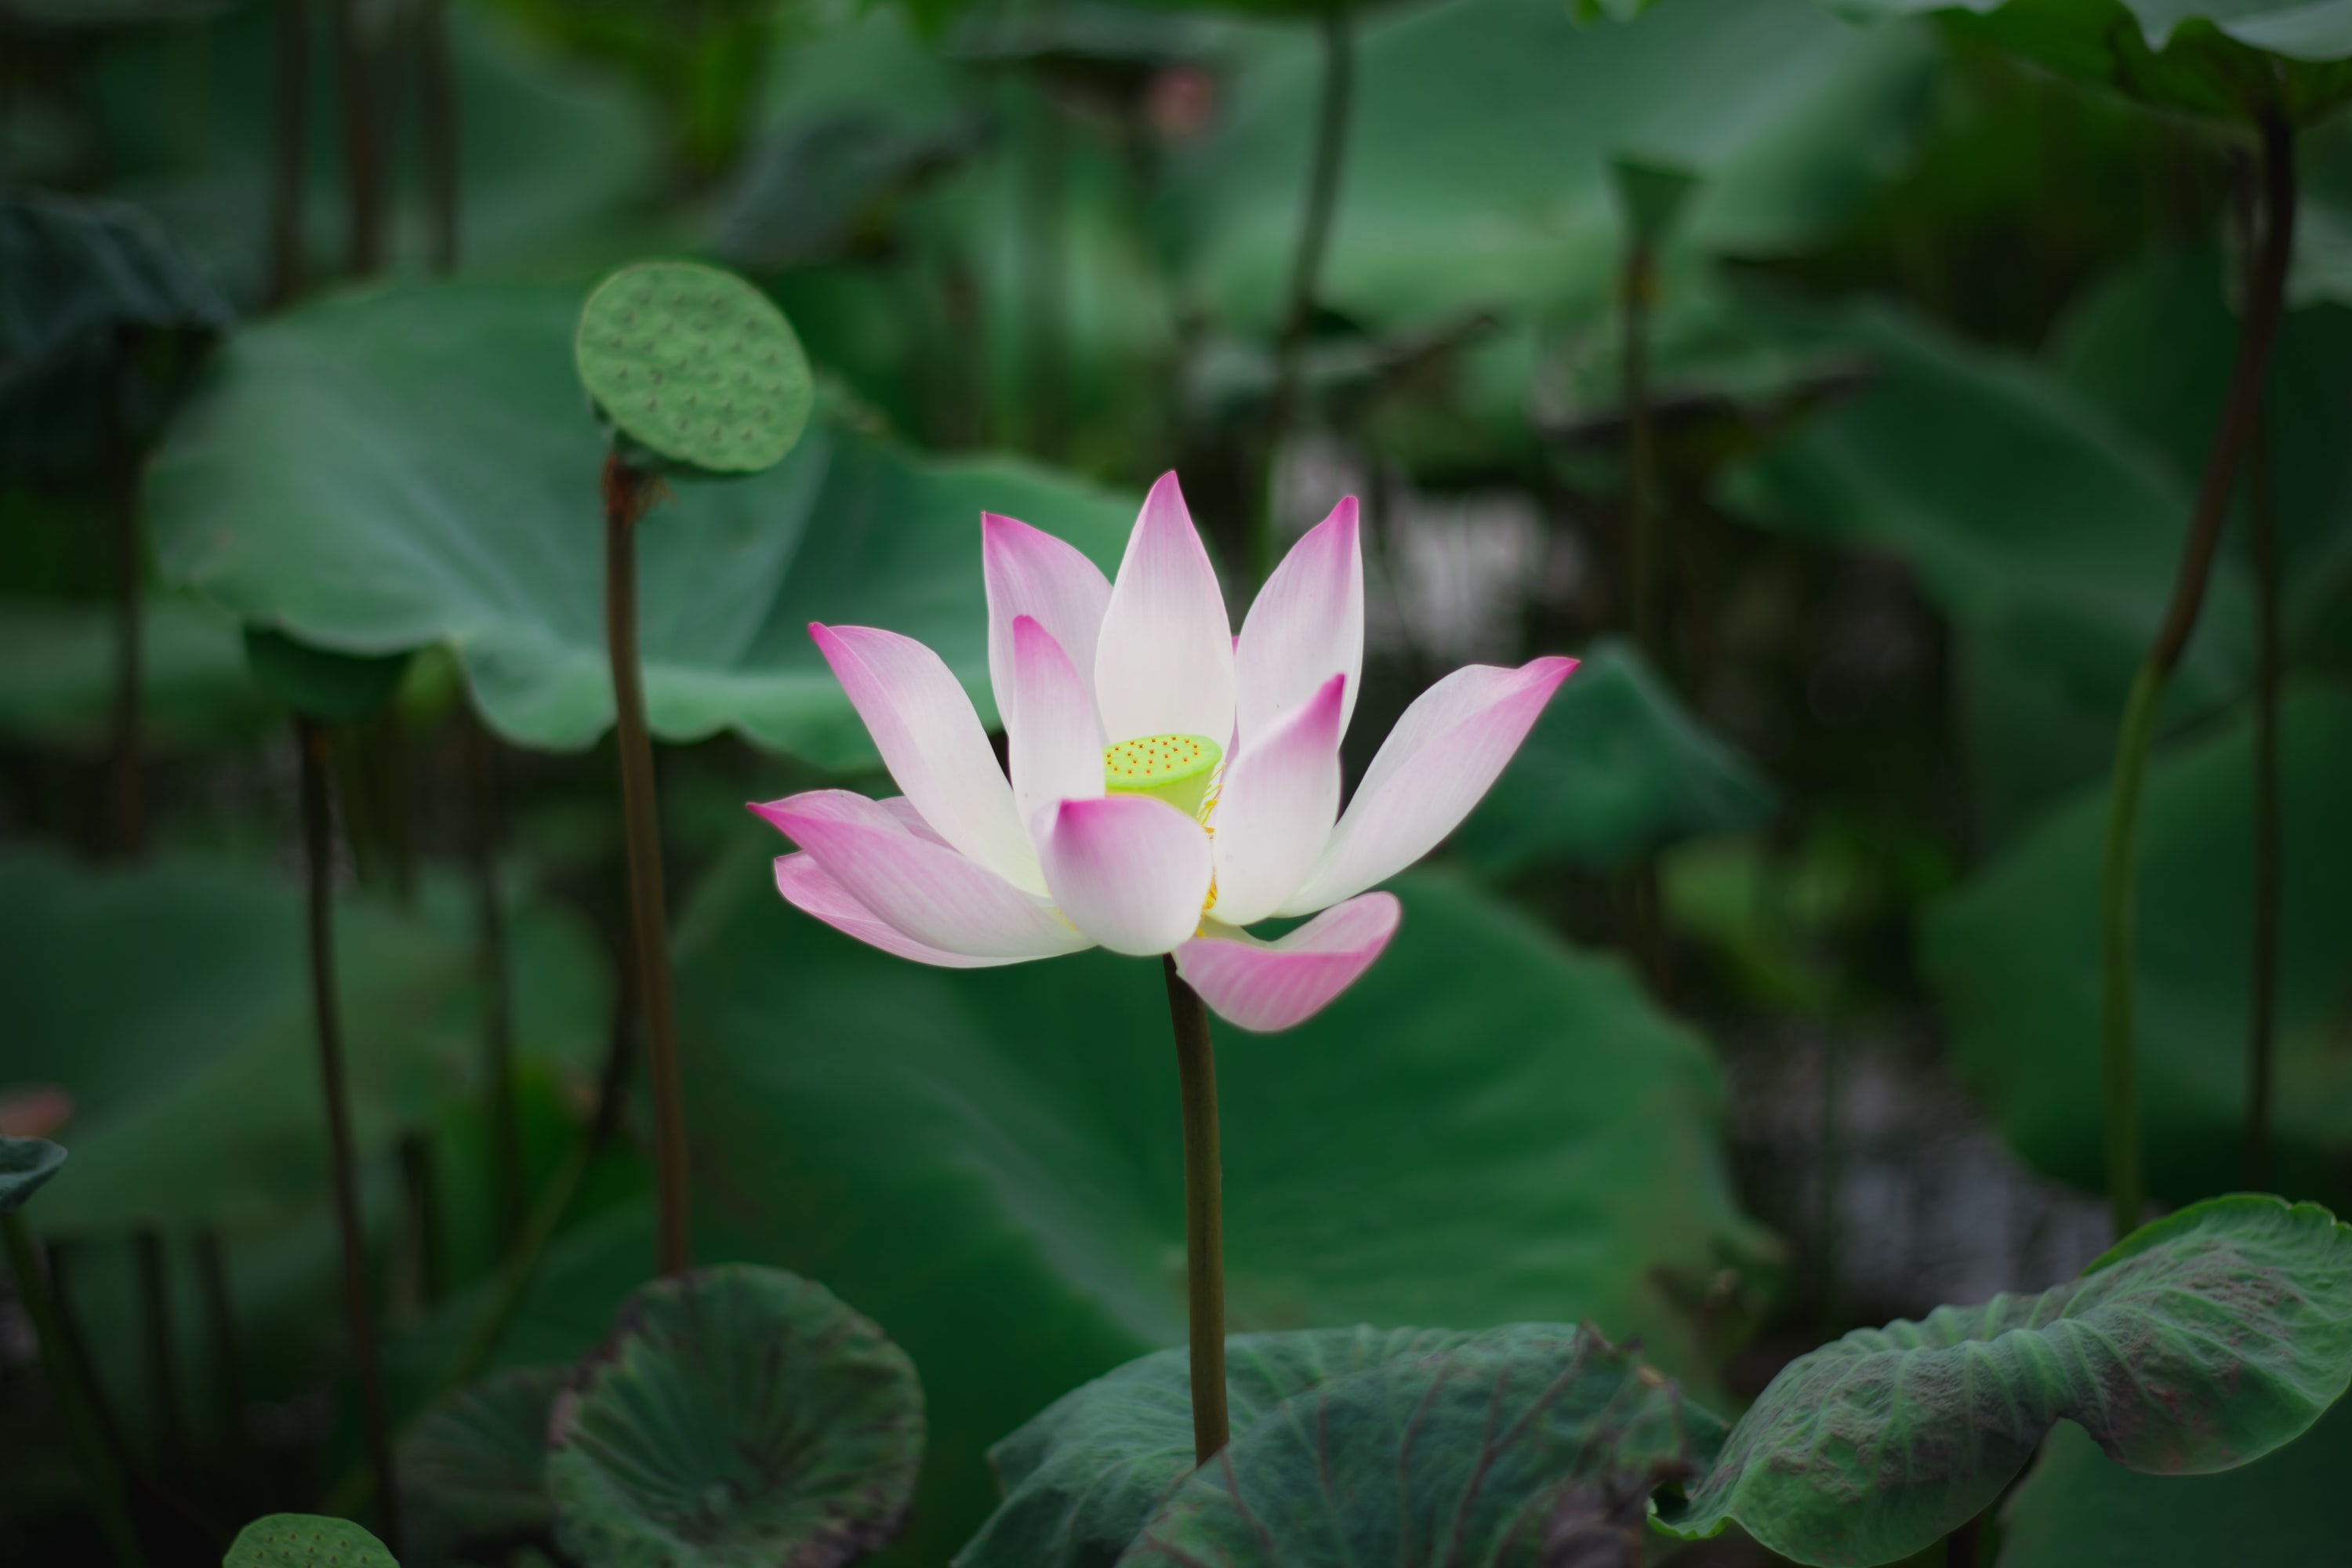 shallow focus photo of pink-and-white petaled flower